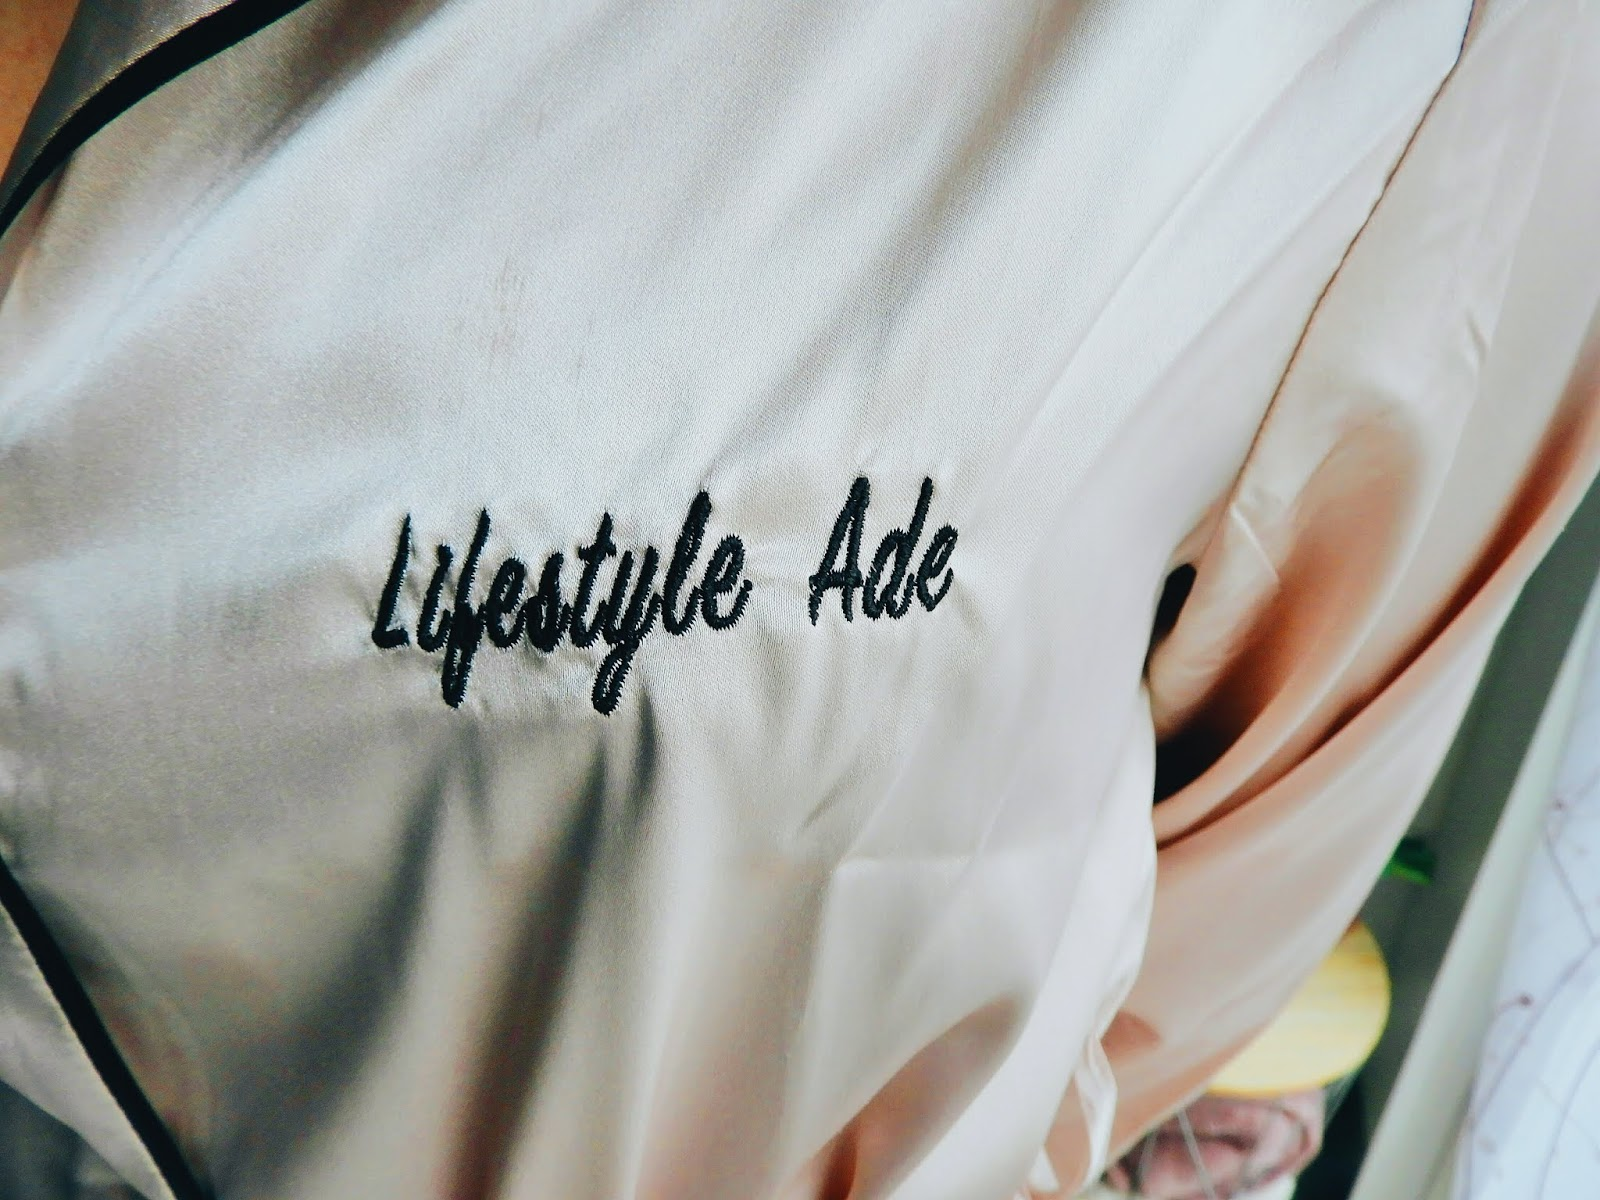 Broderie Lifestyle Ade